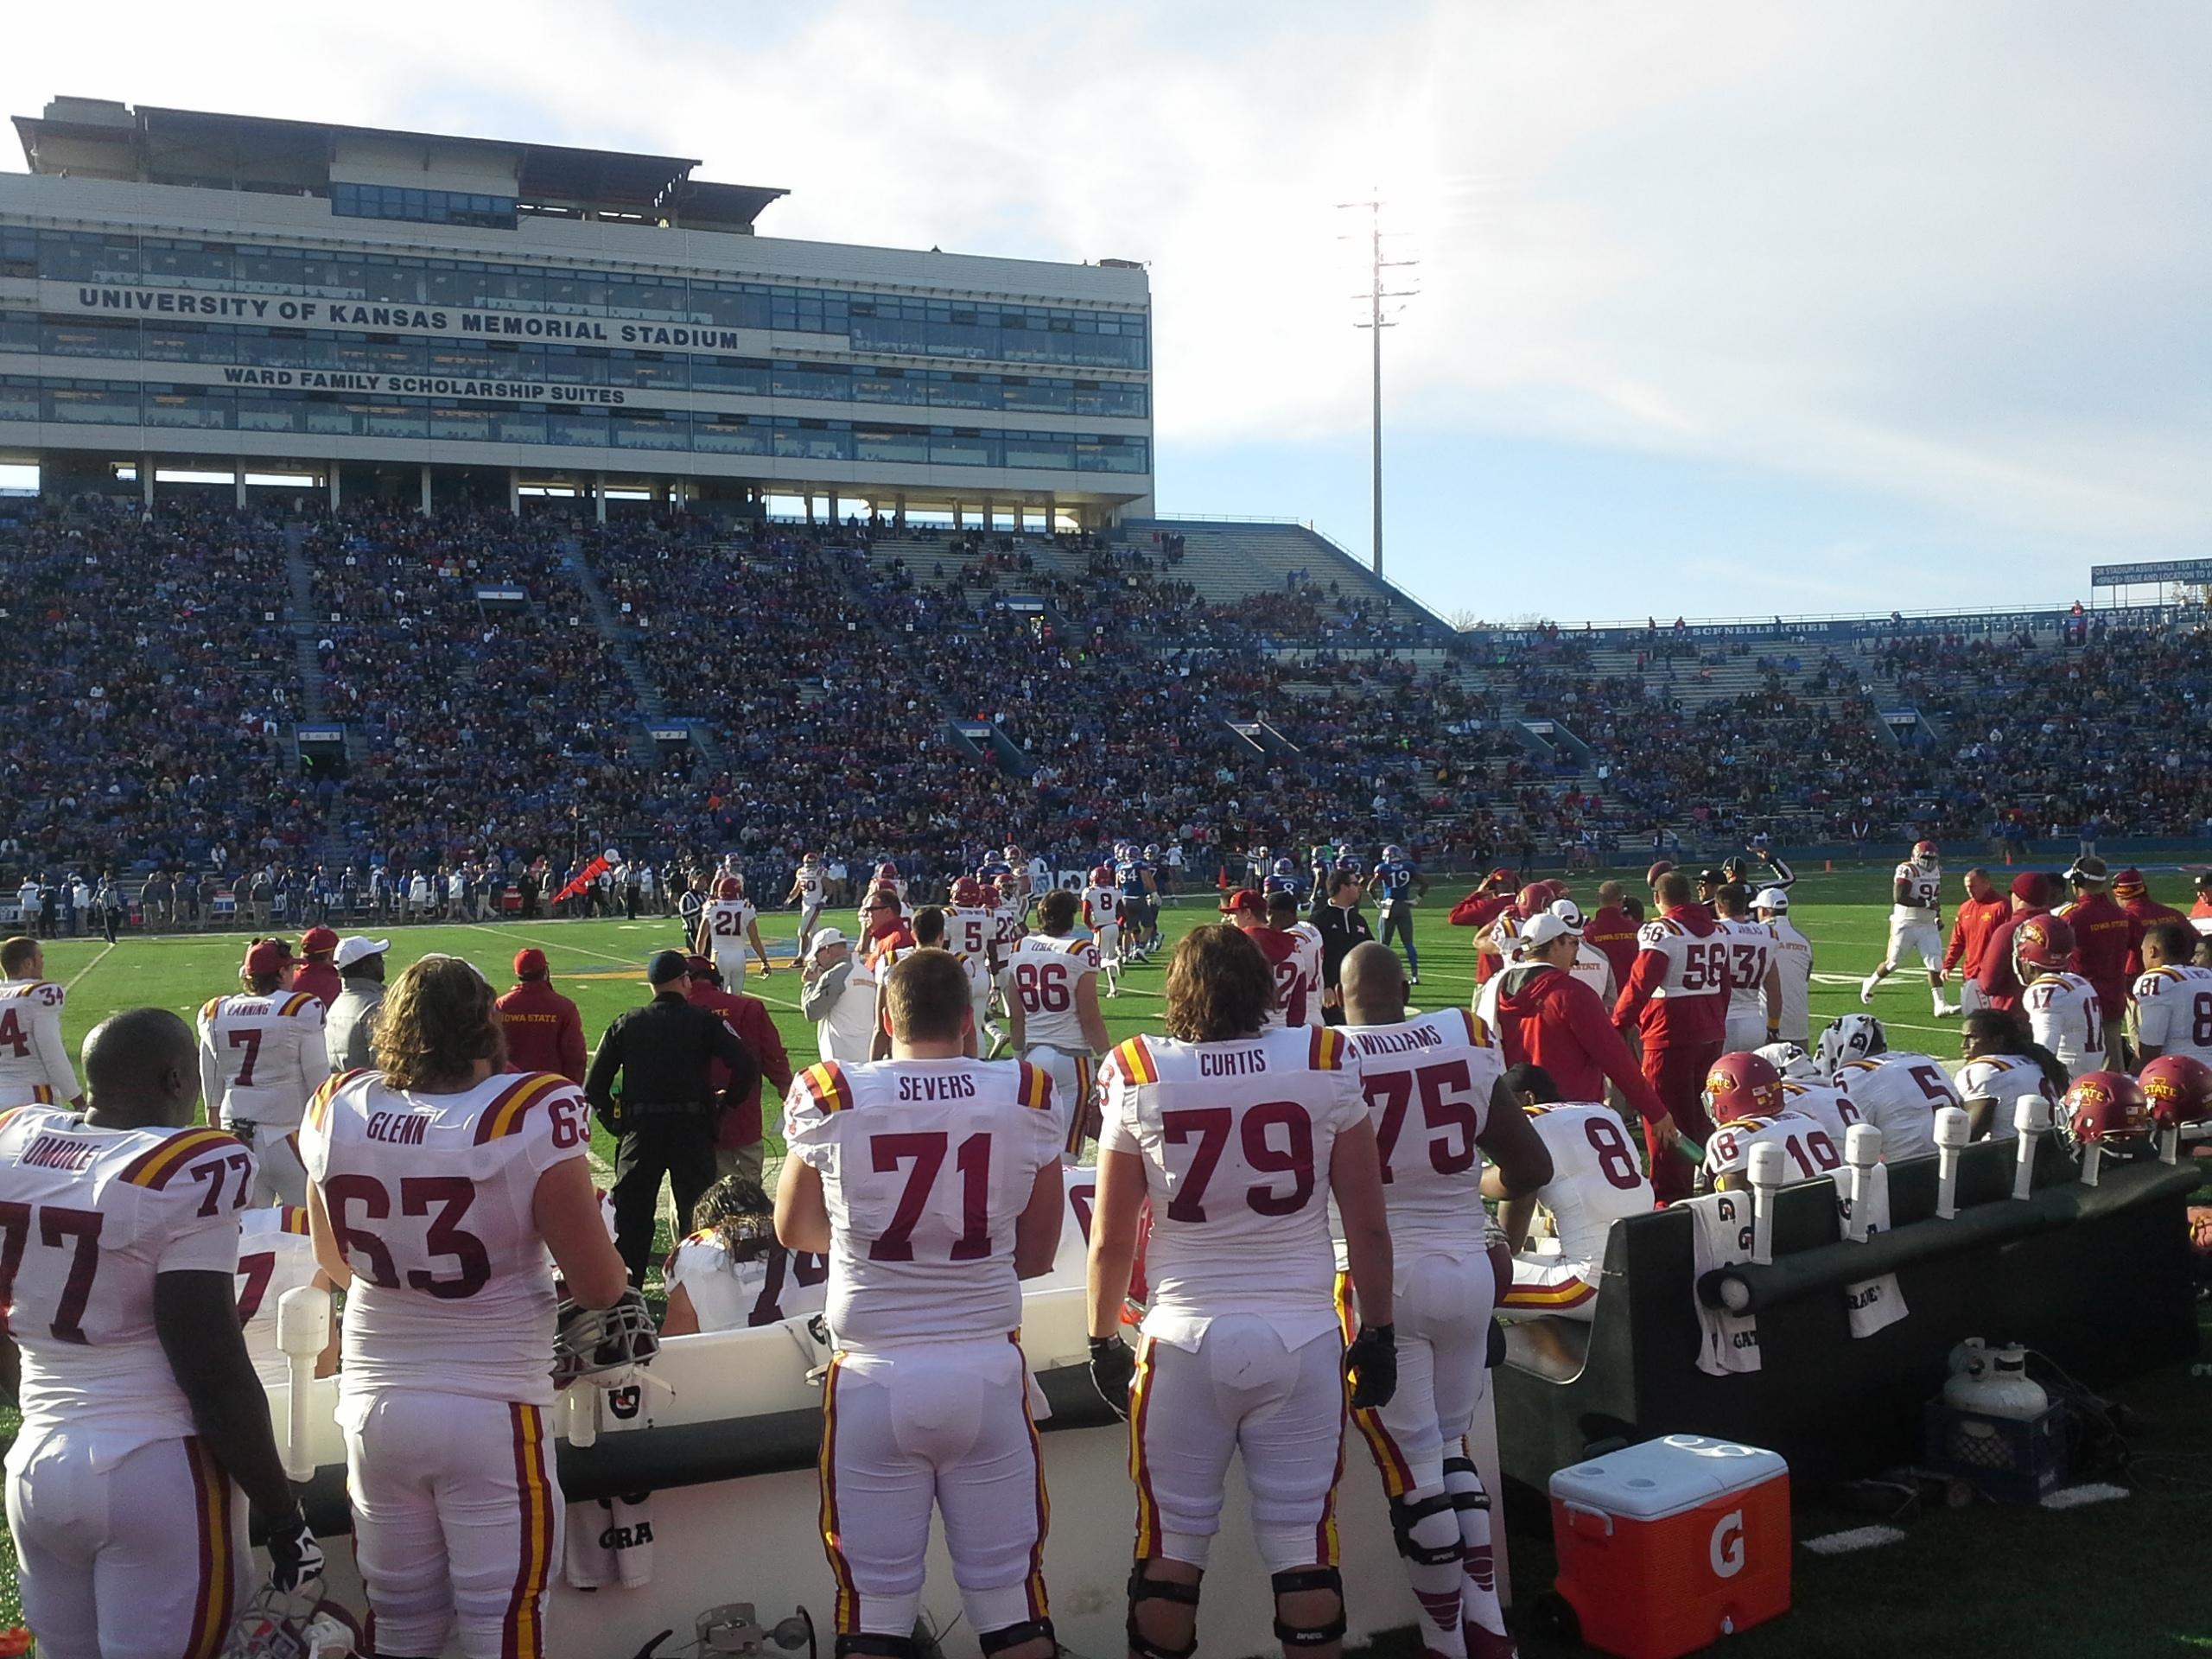 University of Kansas Memorial Stadium Section 22 Row 1